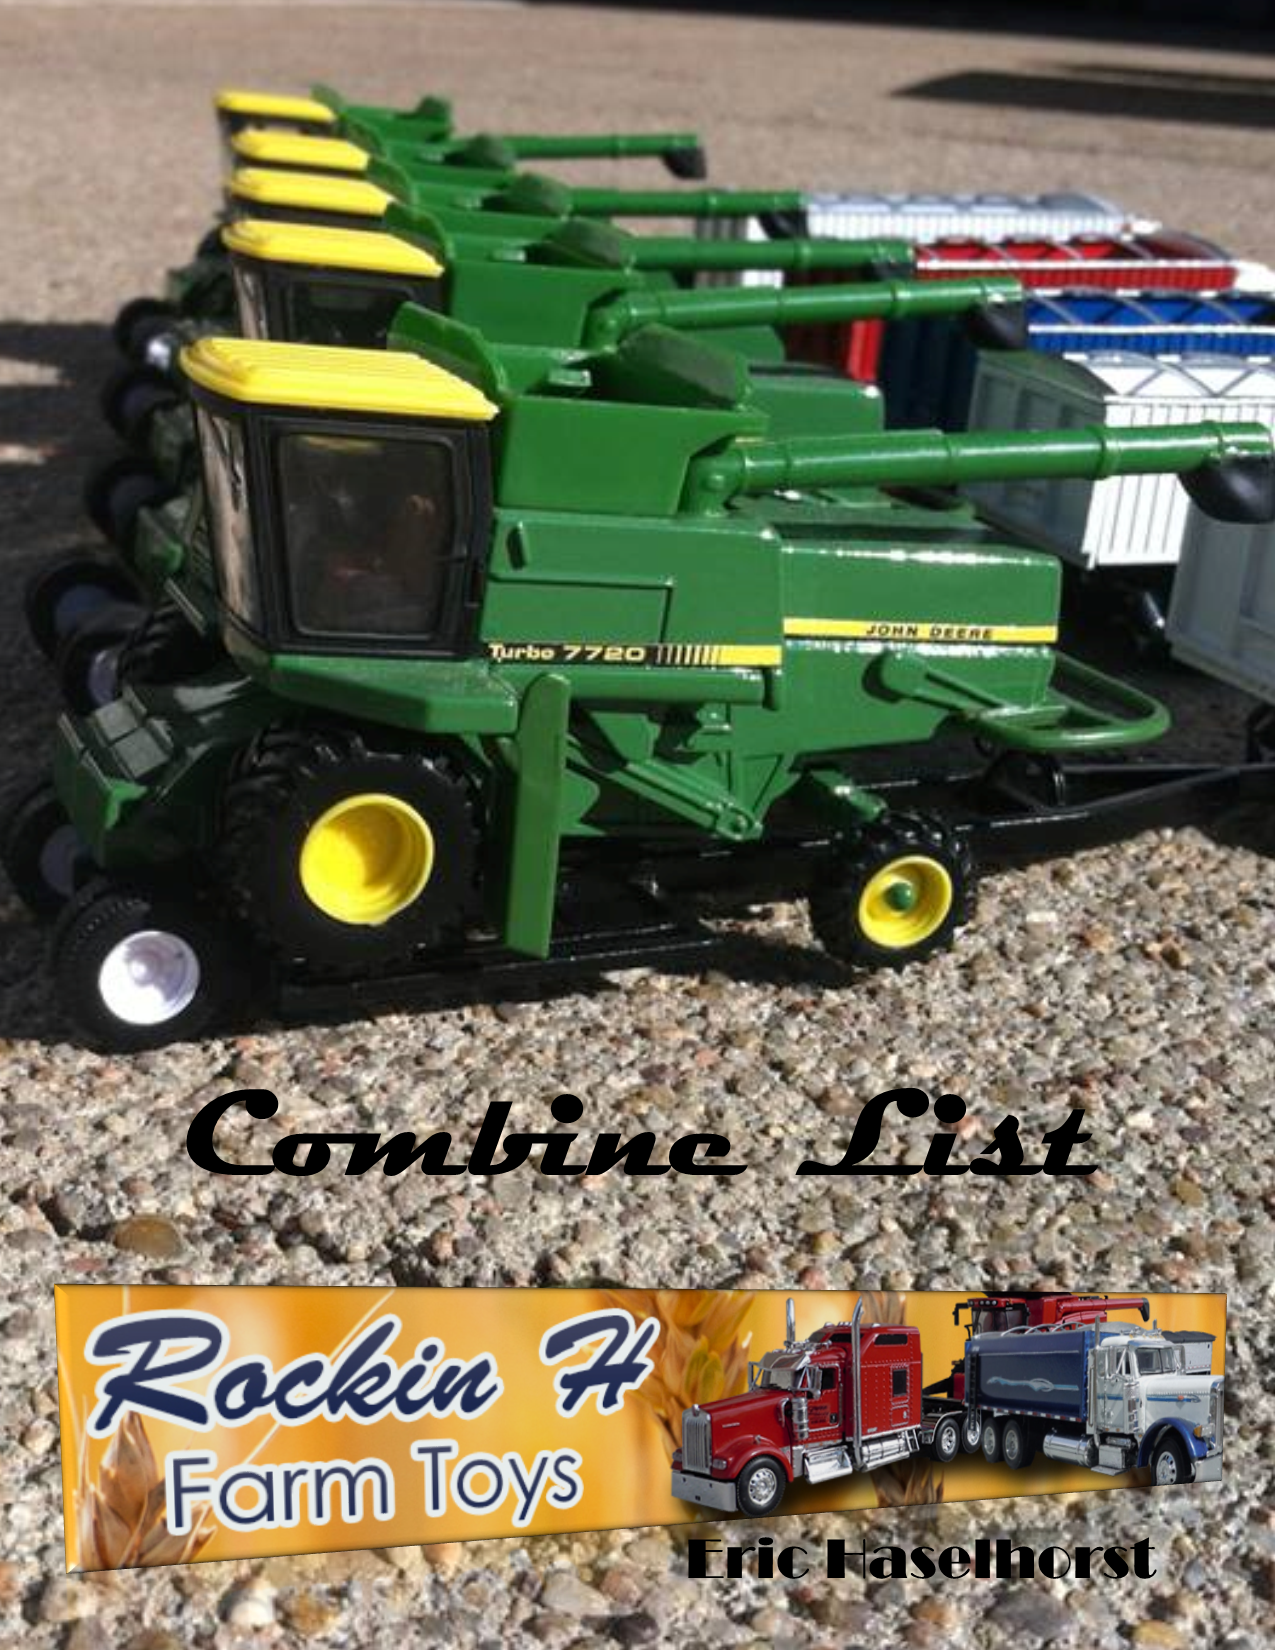 The Ultimate Guide to 1/64 Scale Modeling: Custom Harvesting